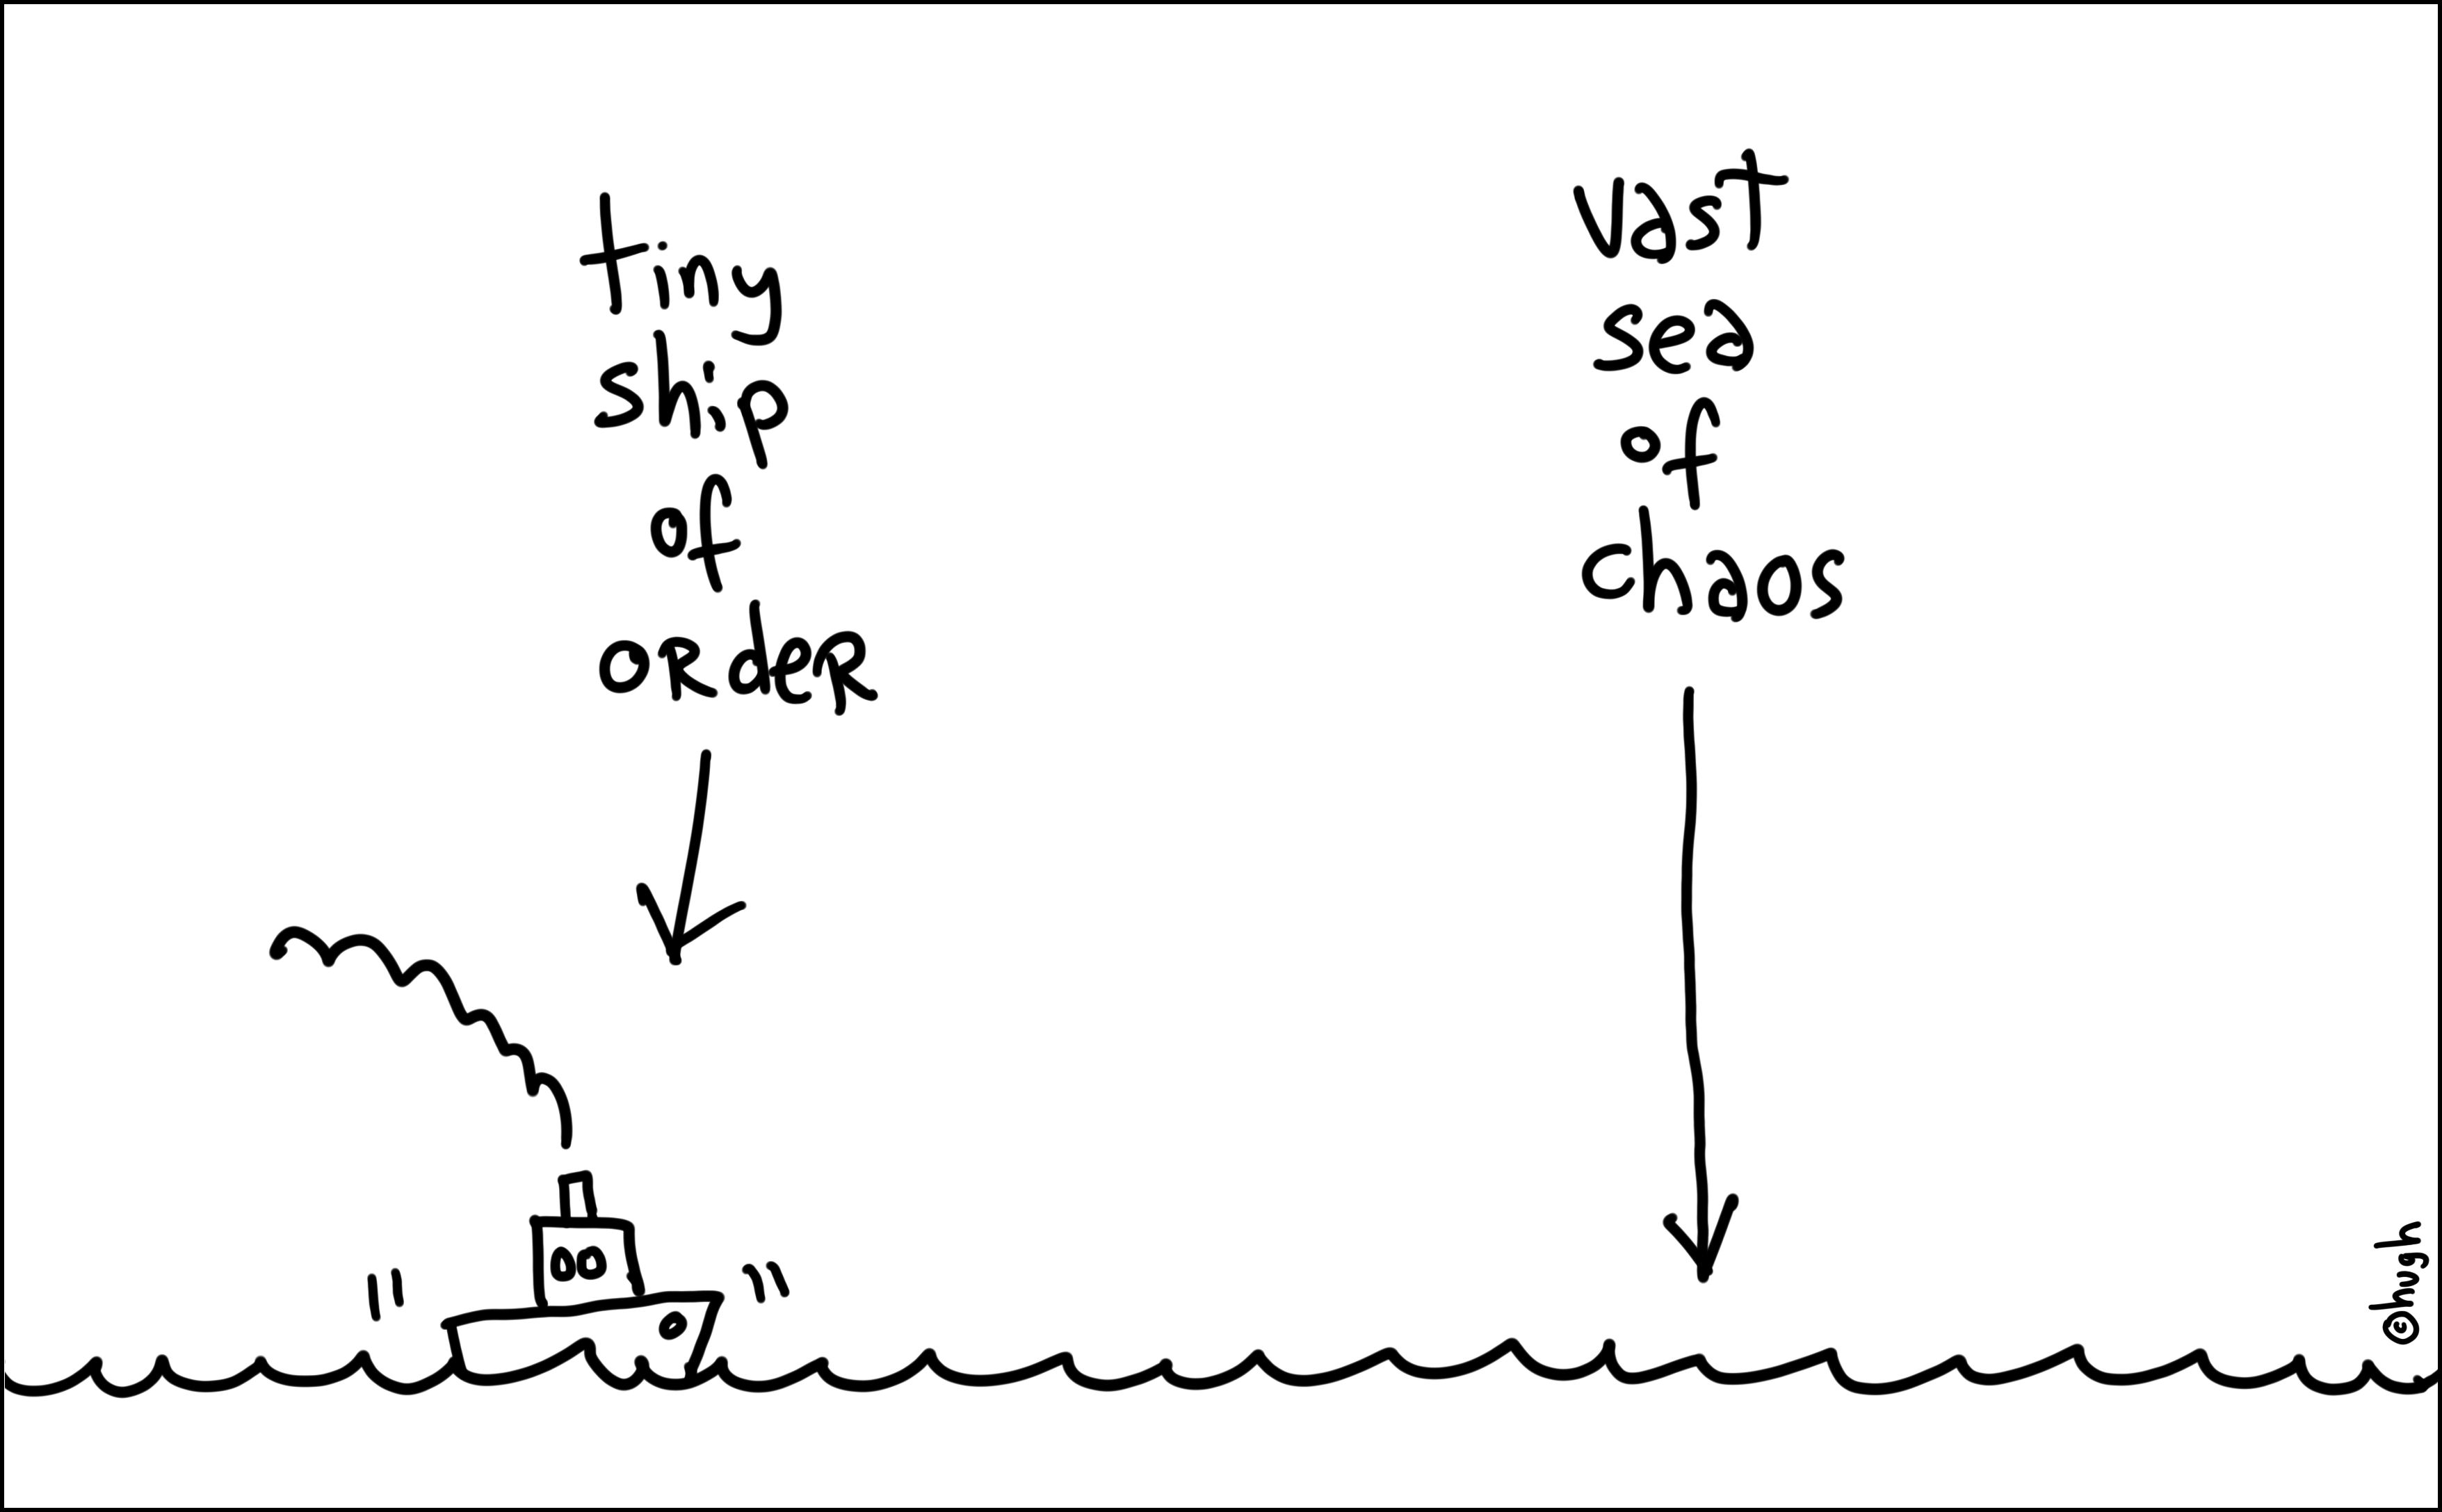 Tiny ship of order in a vast sea of chaos